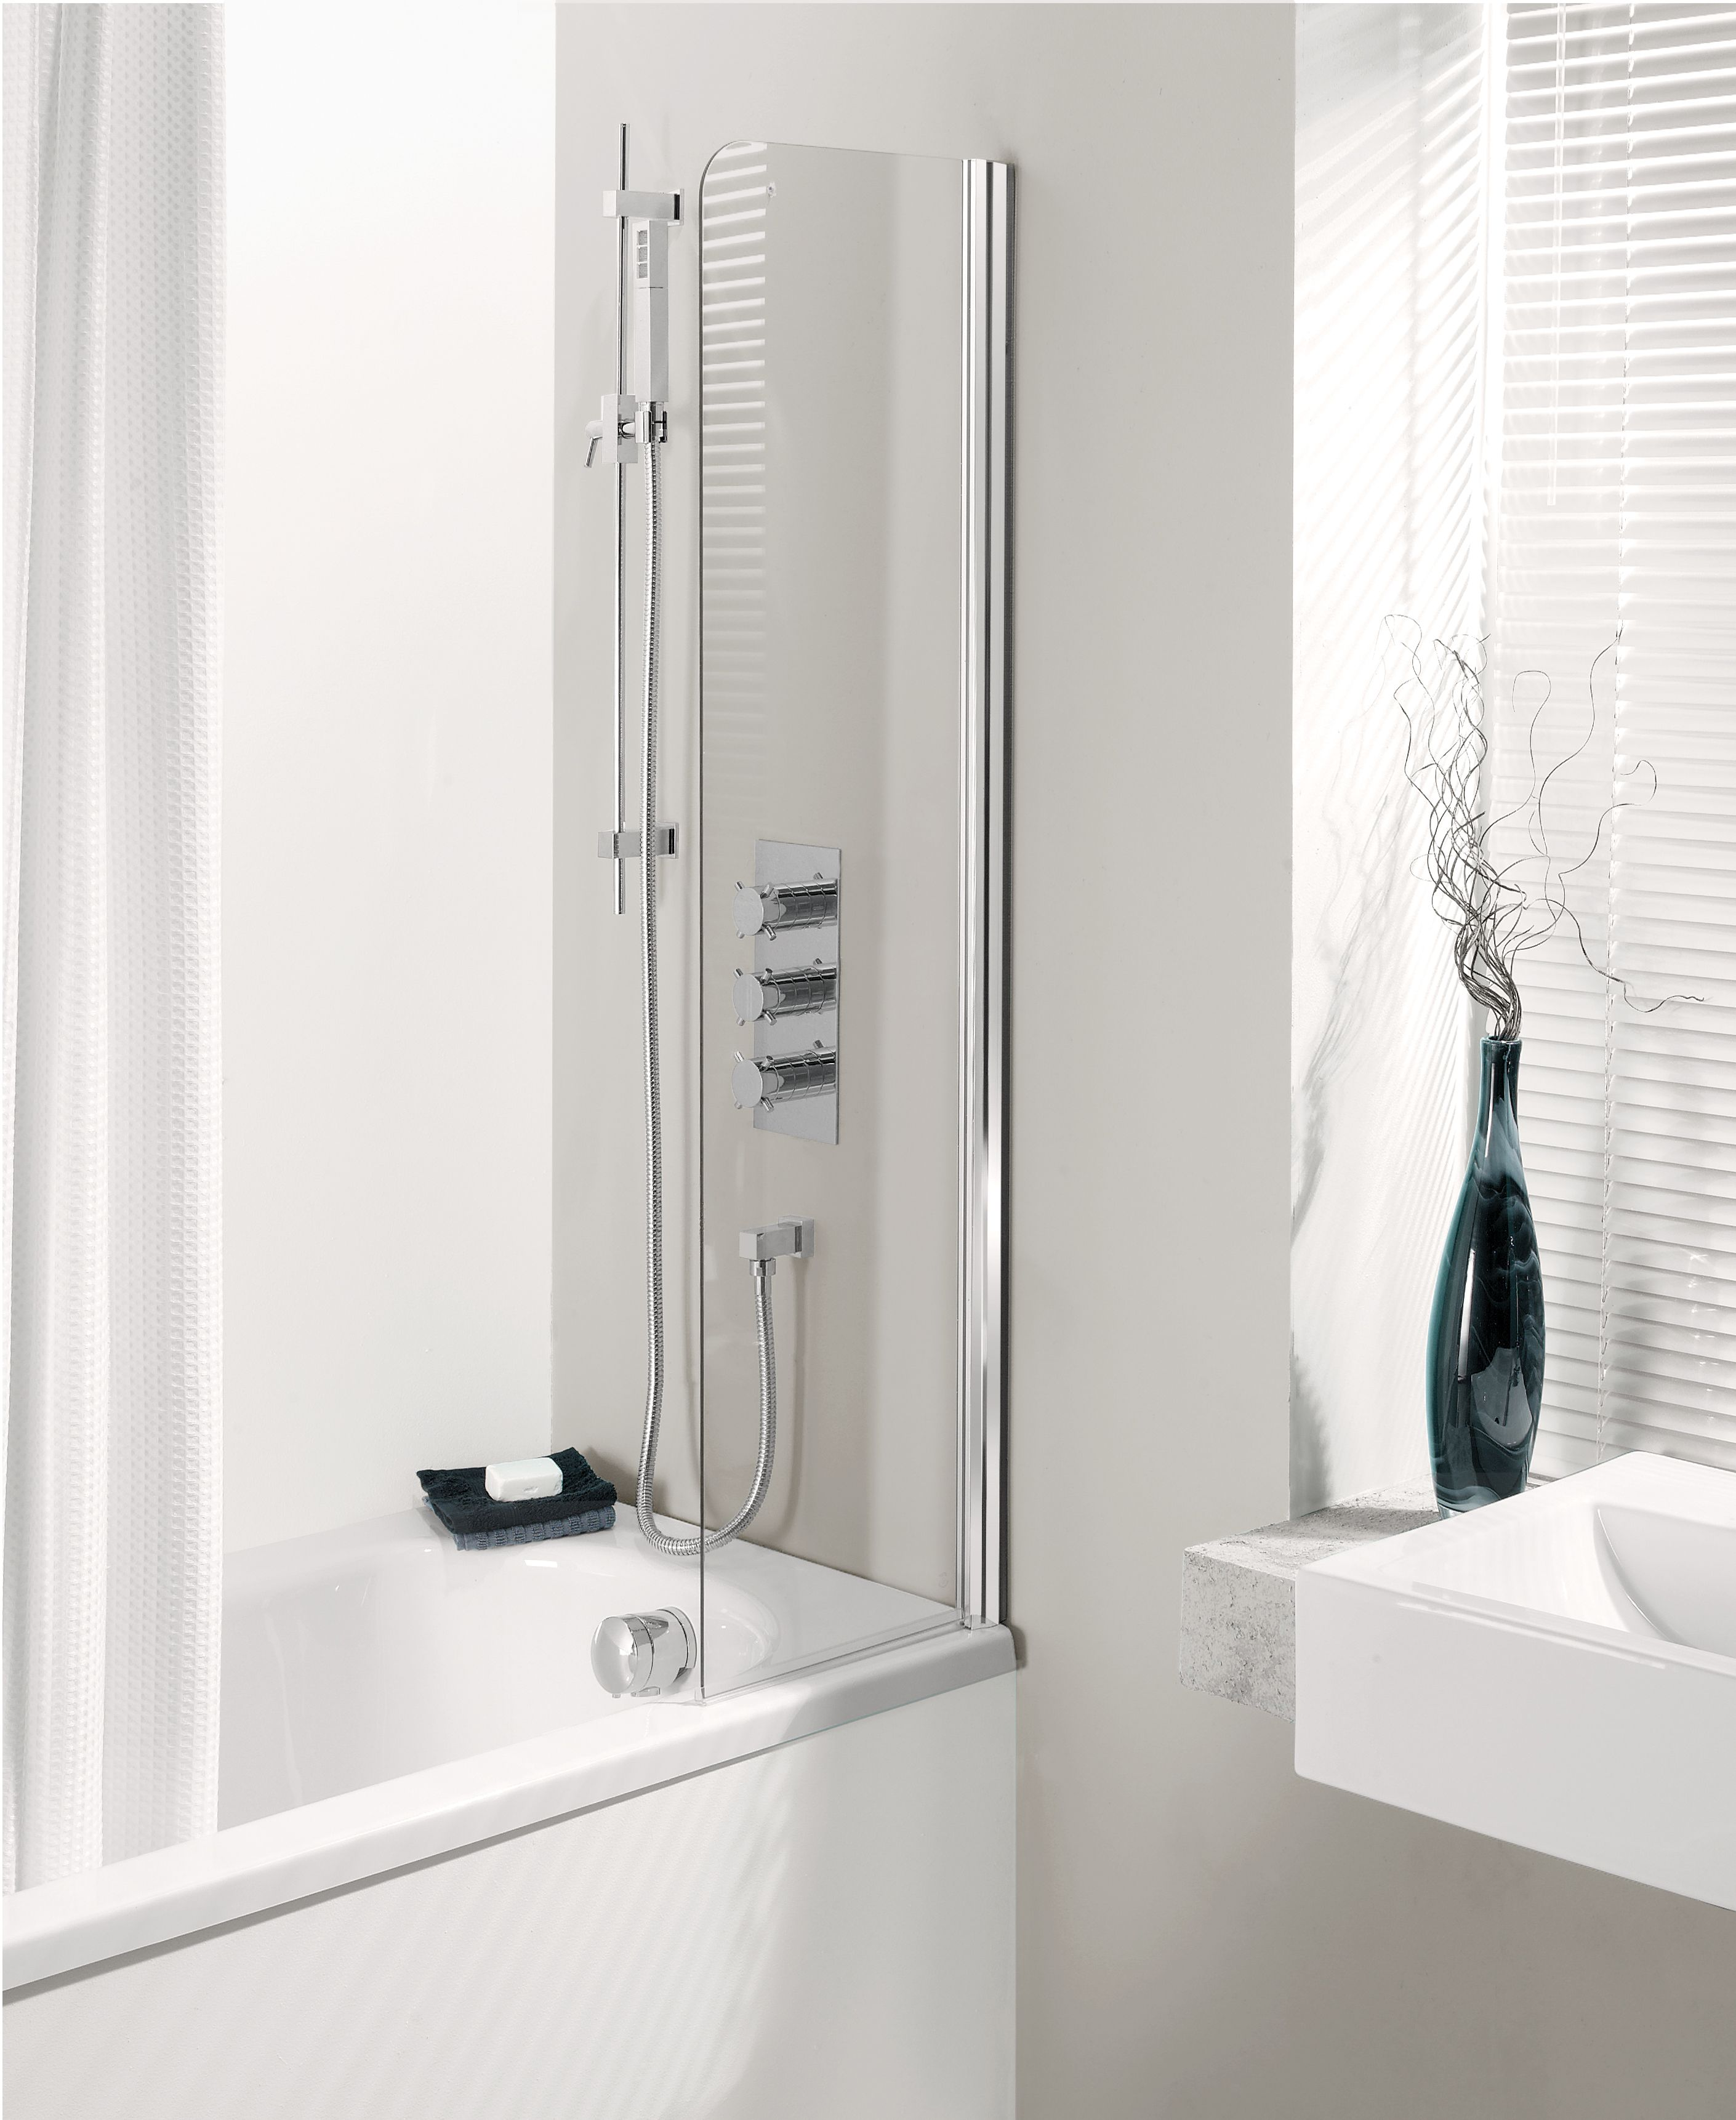 Supreme Bathroom Bath Guard from Crosswater http://www.simpsons ...